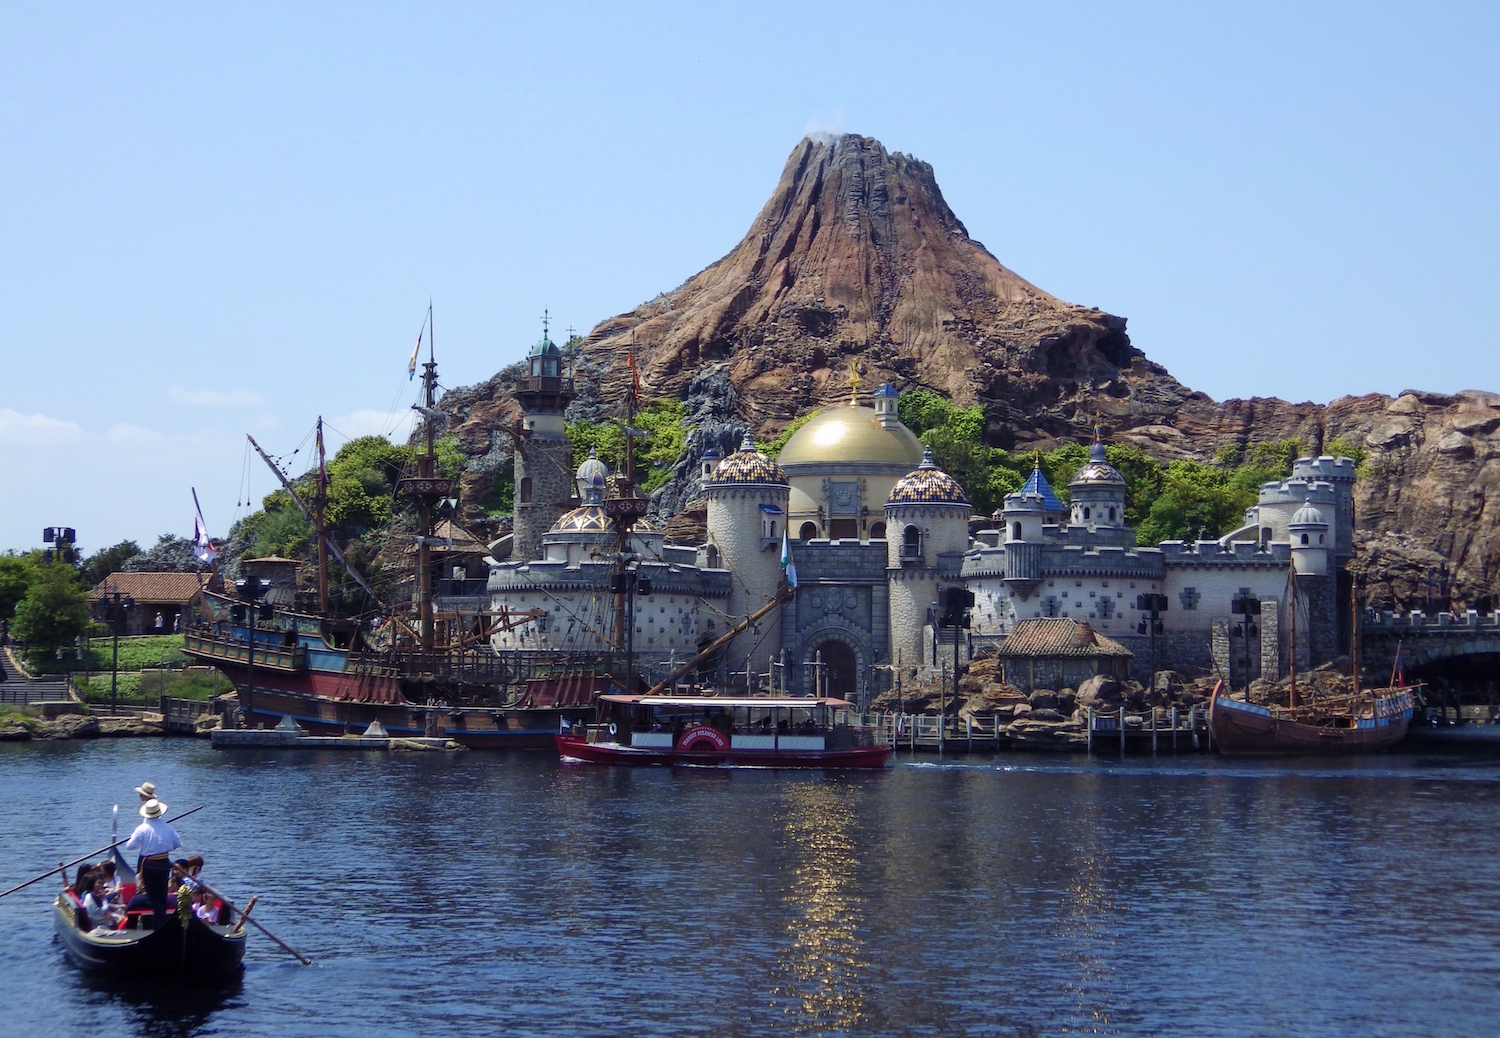 A Venetian Gondola passes in front of Mount Prometheus in Mediterranean Harbor at Tokyo DisneySea.